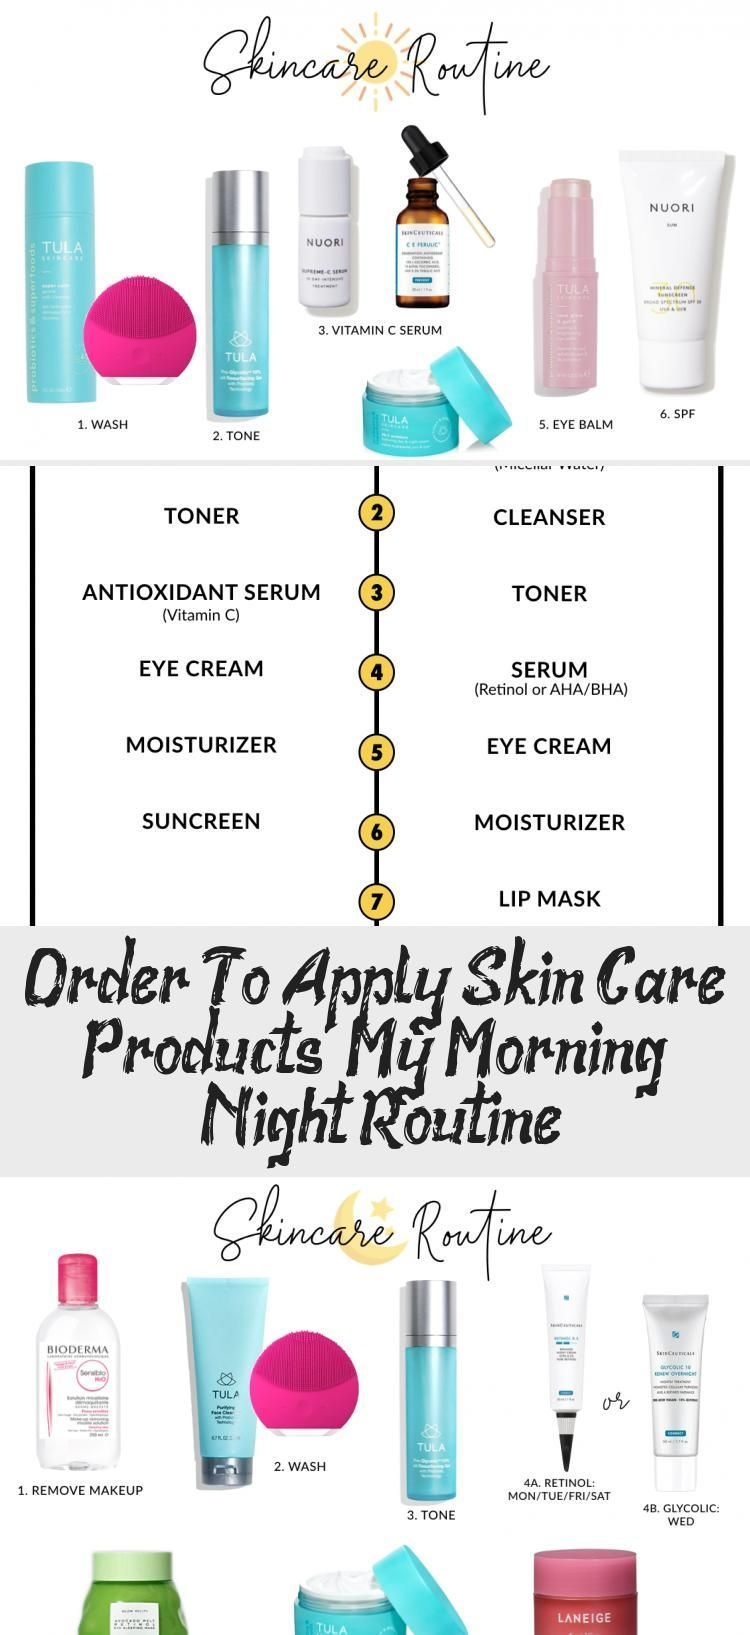 Order To Apply Skin Care Products My Morning Night Routine Beauty Ideas Apply Beau Apply In 2020 Sephora Skin Care Night Routine Night Skin Care Routine